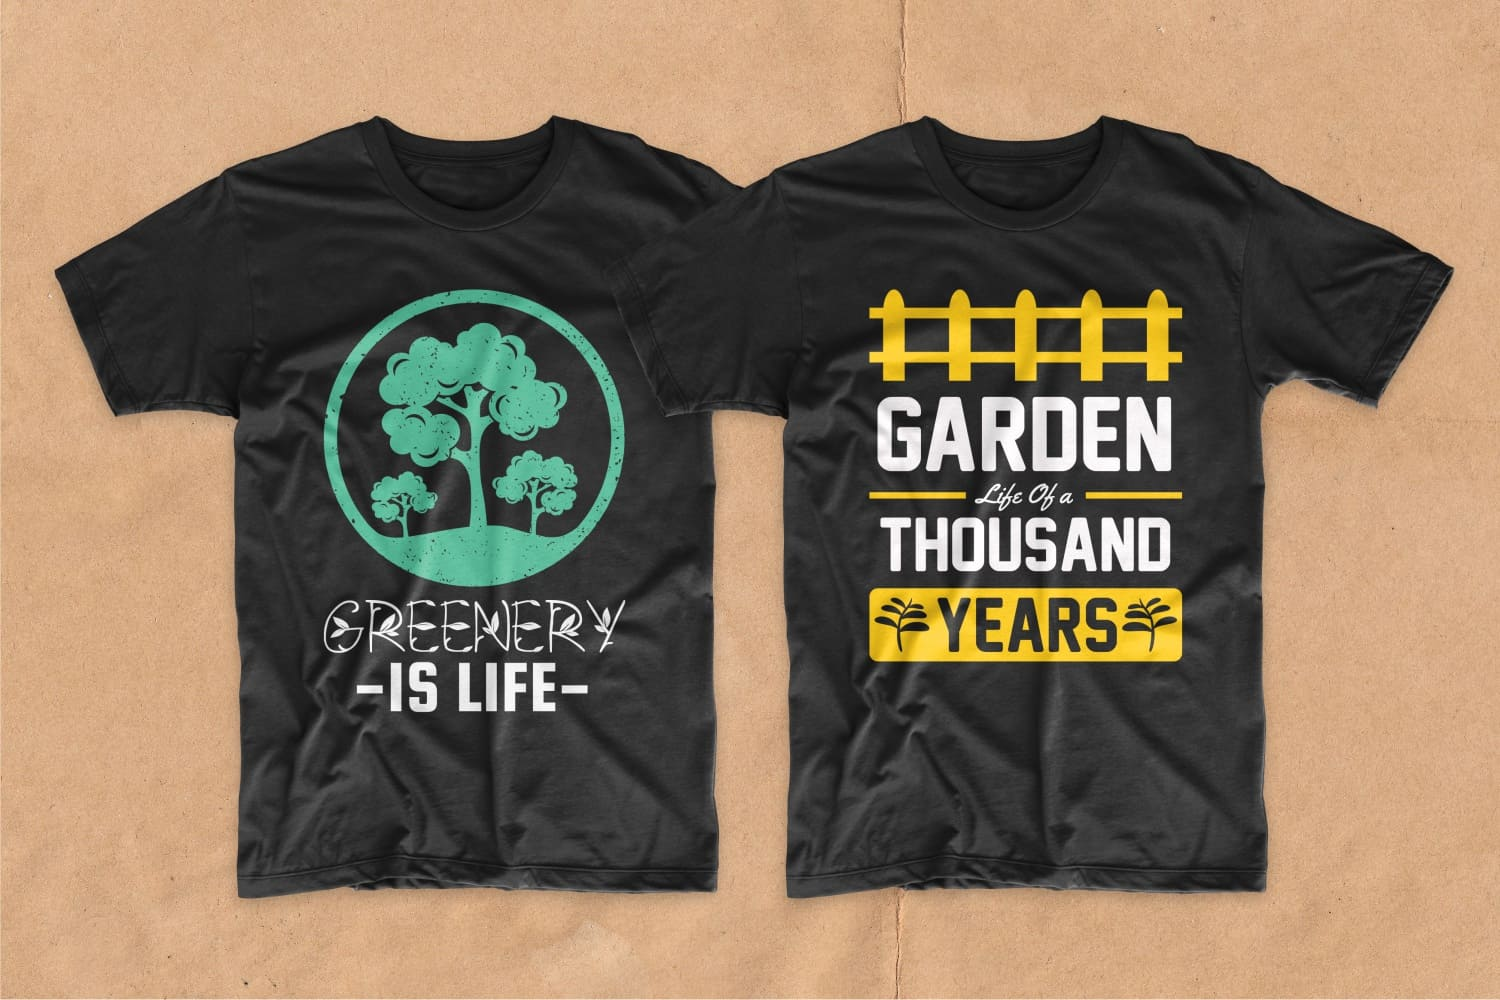 Two black T-shirts, one of which has a green tree painted on it.